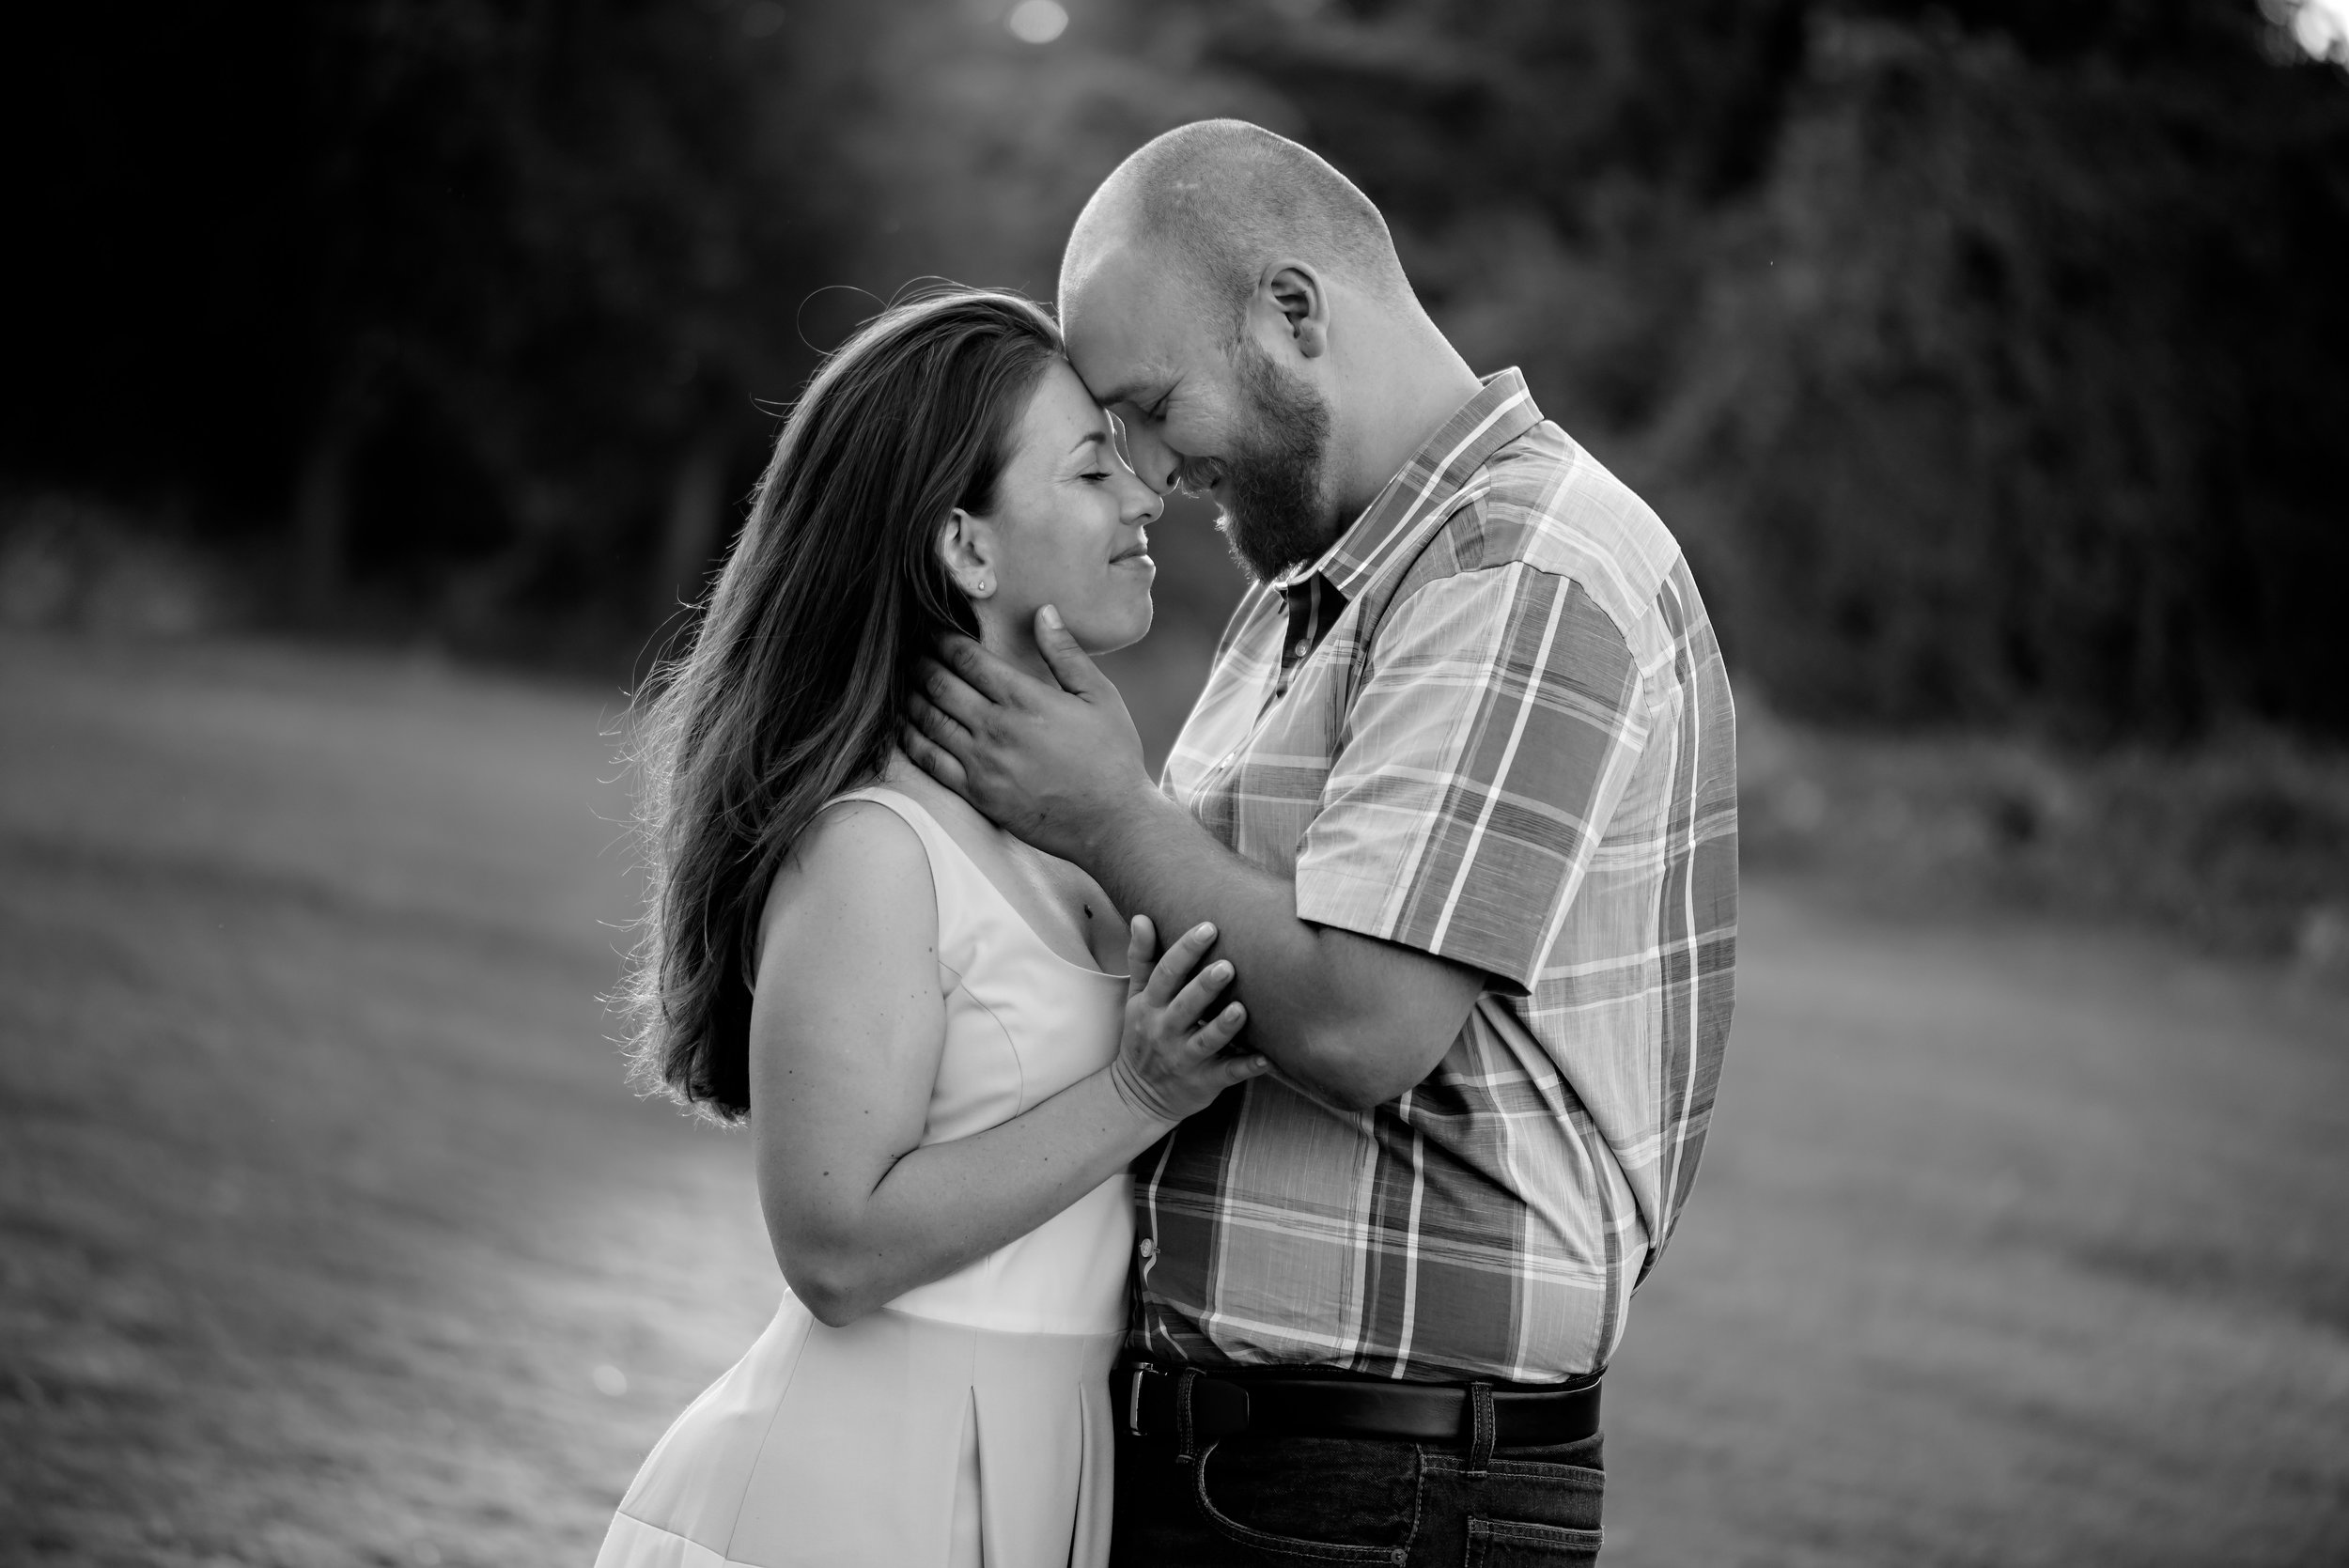 holly-mike-006-sacramento-engagement-wedding-photographer-katherine-nicole-photography.JPG